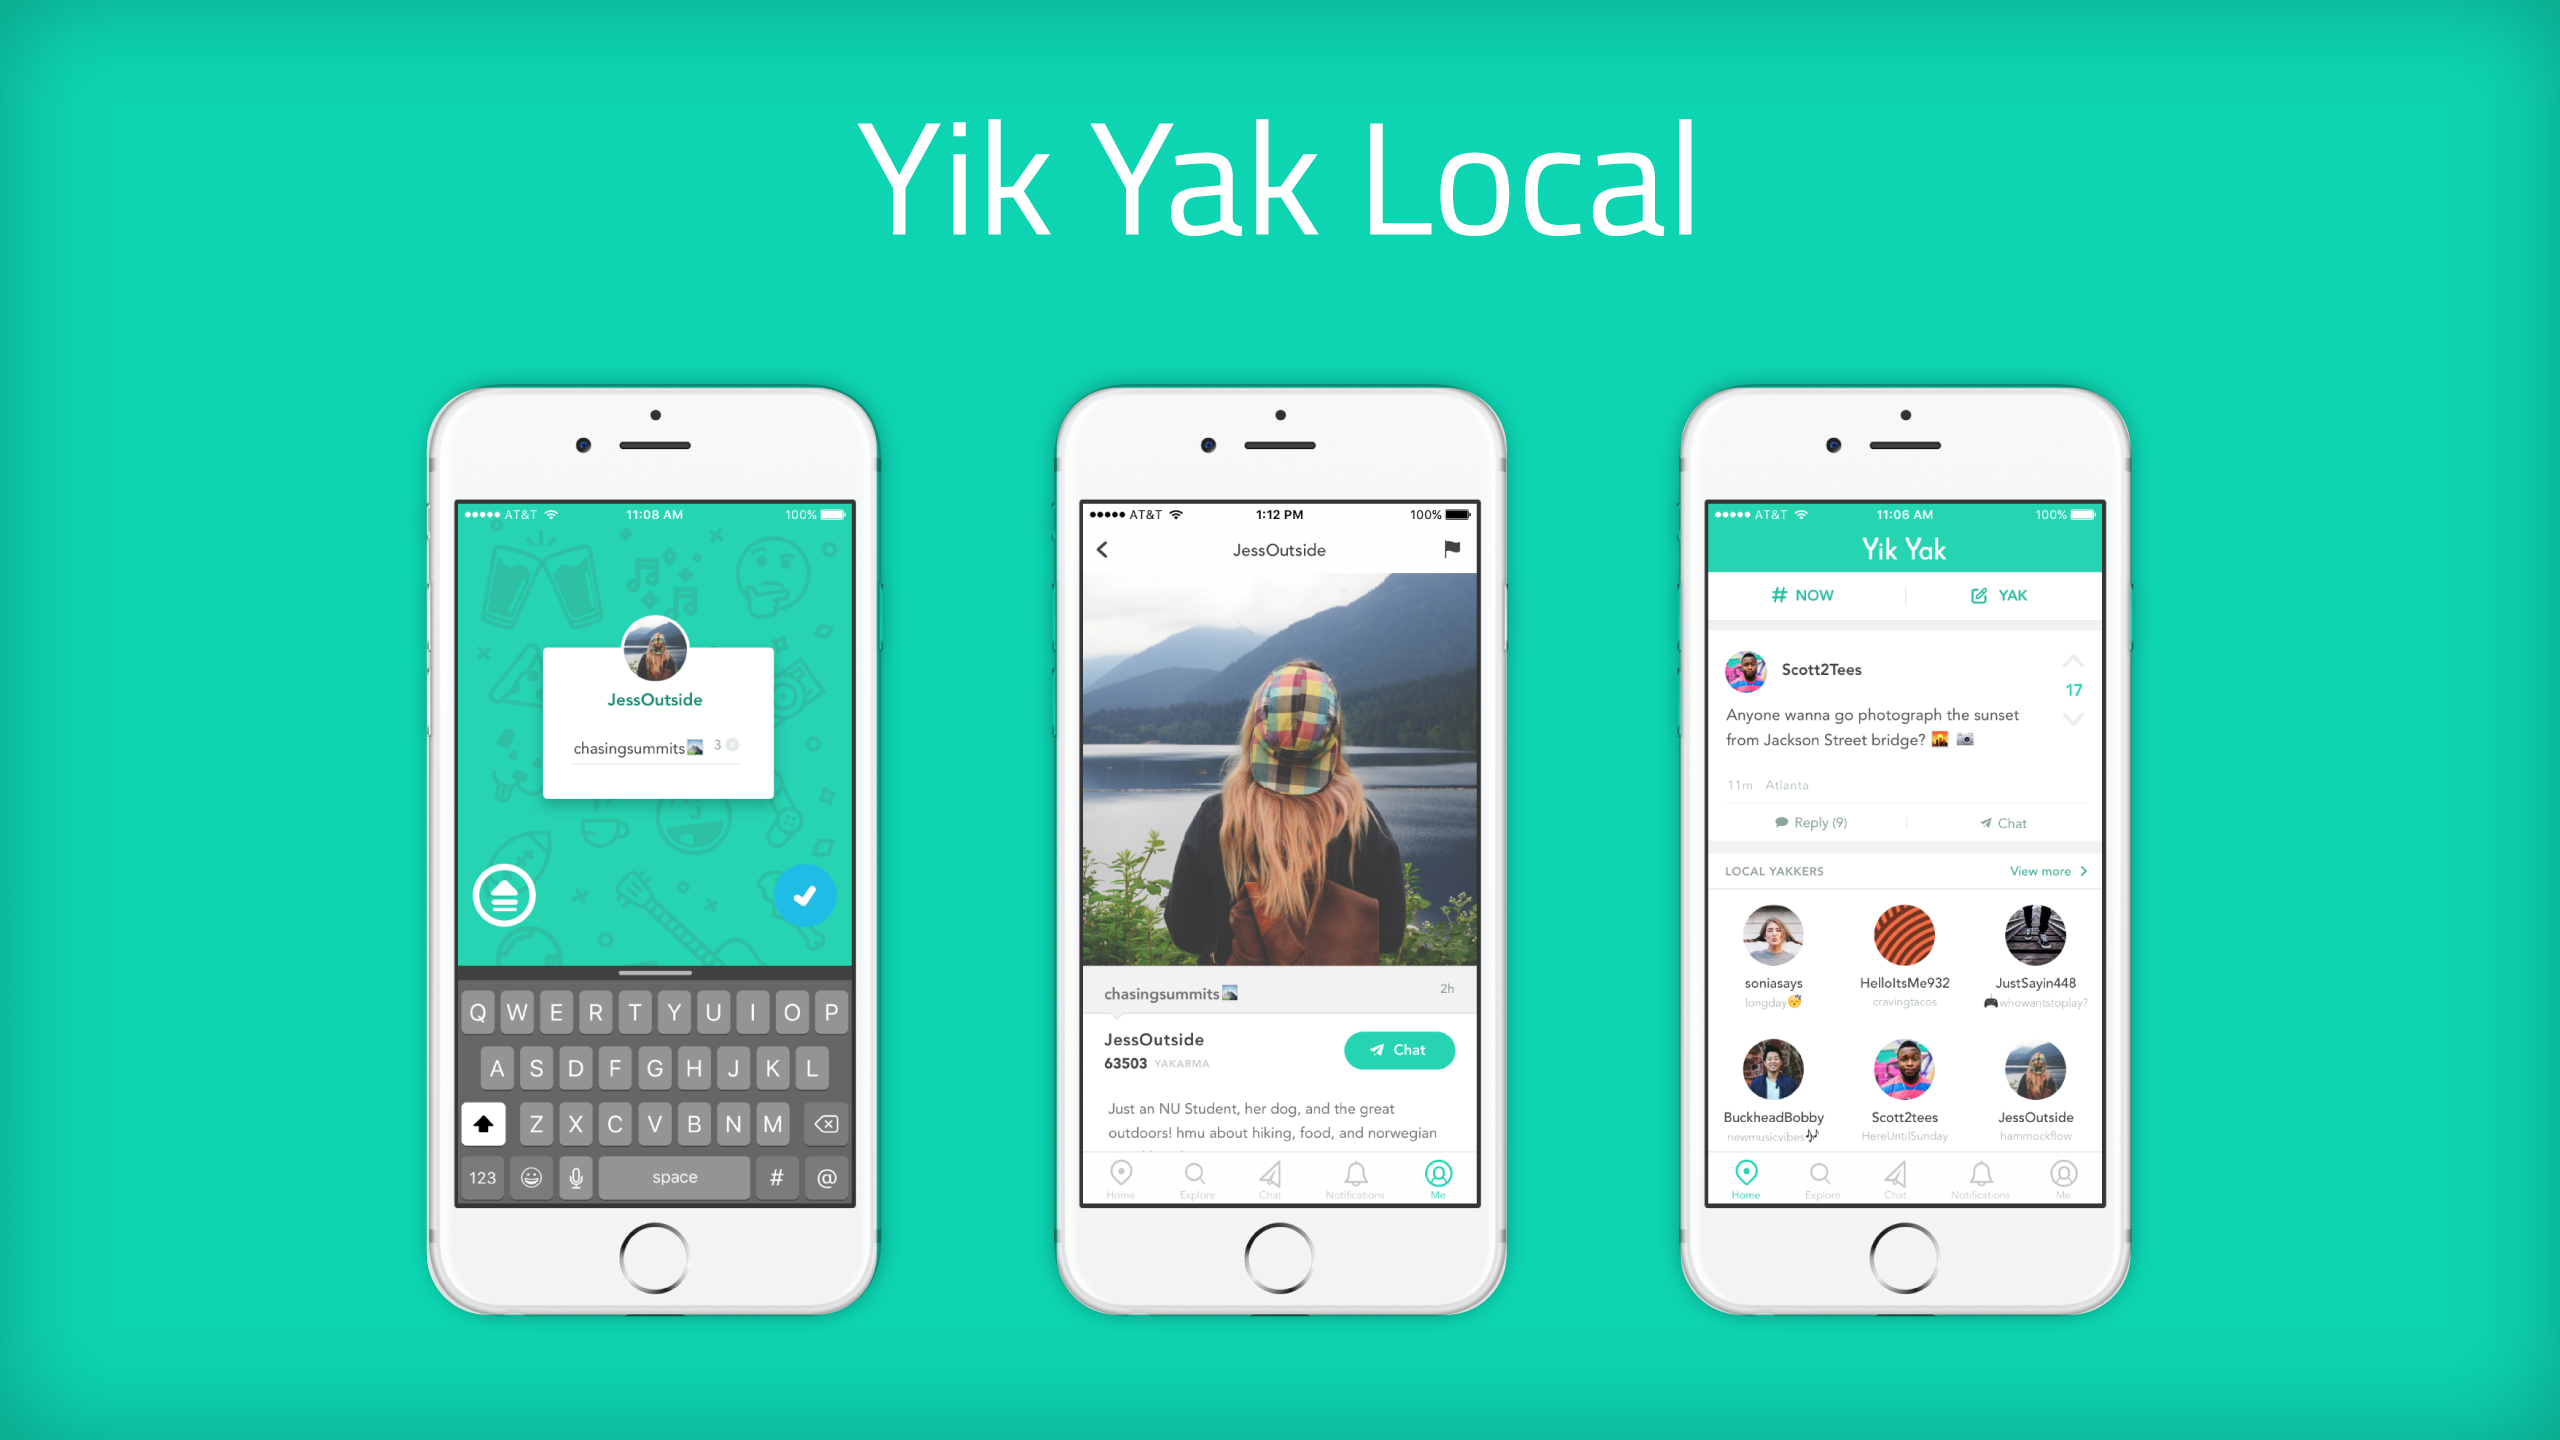 Yik Yak yearns to be local, not just anonymous | TechCrunch